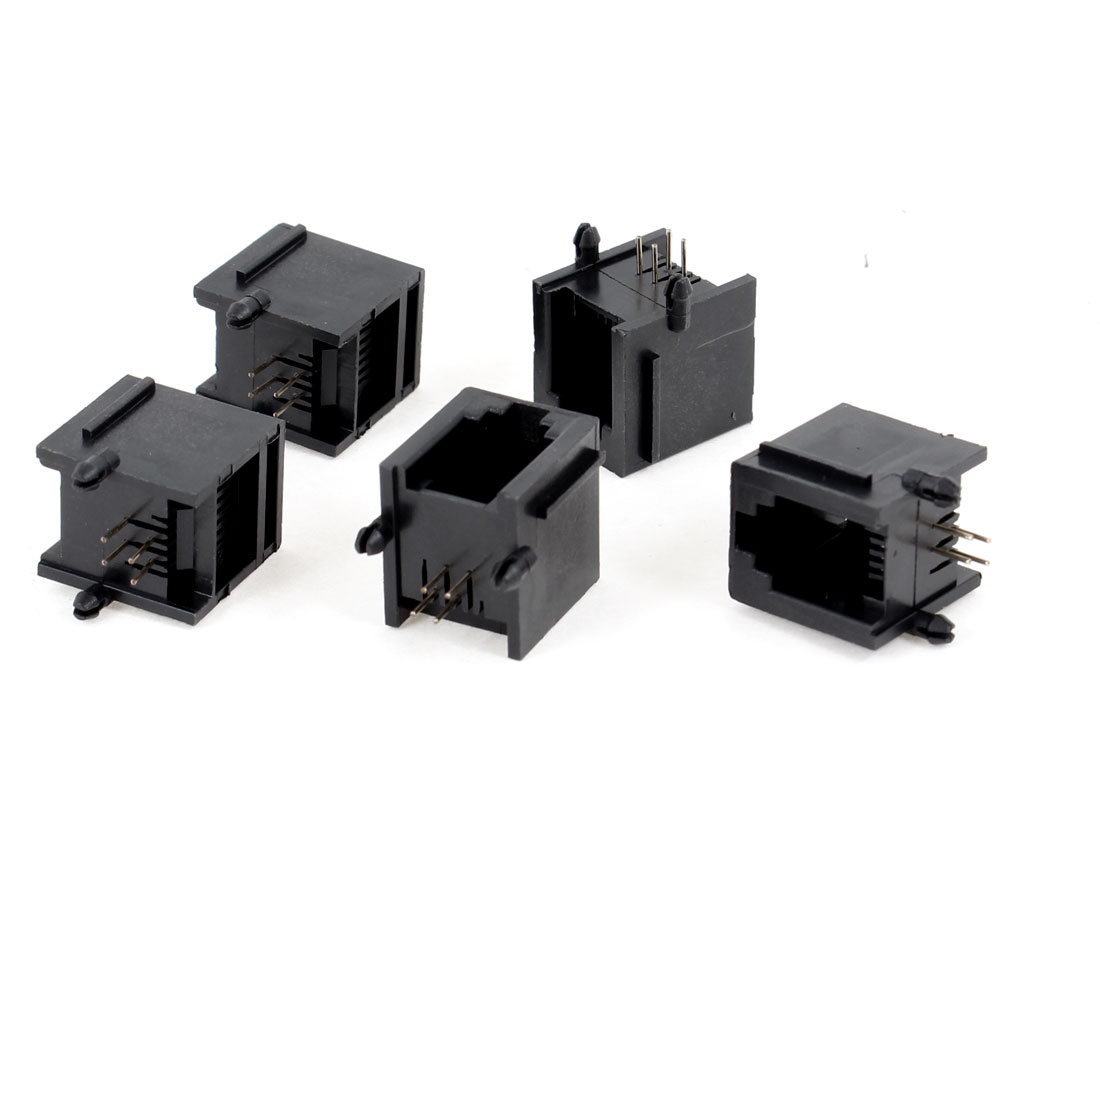 5 Pcs Black Plastic Unshielded RJ11 6P4C Network Modular PCB Connector Jacks